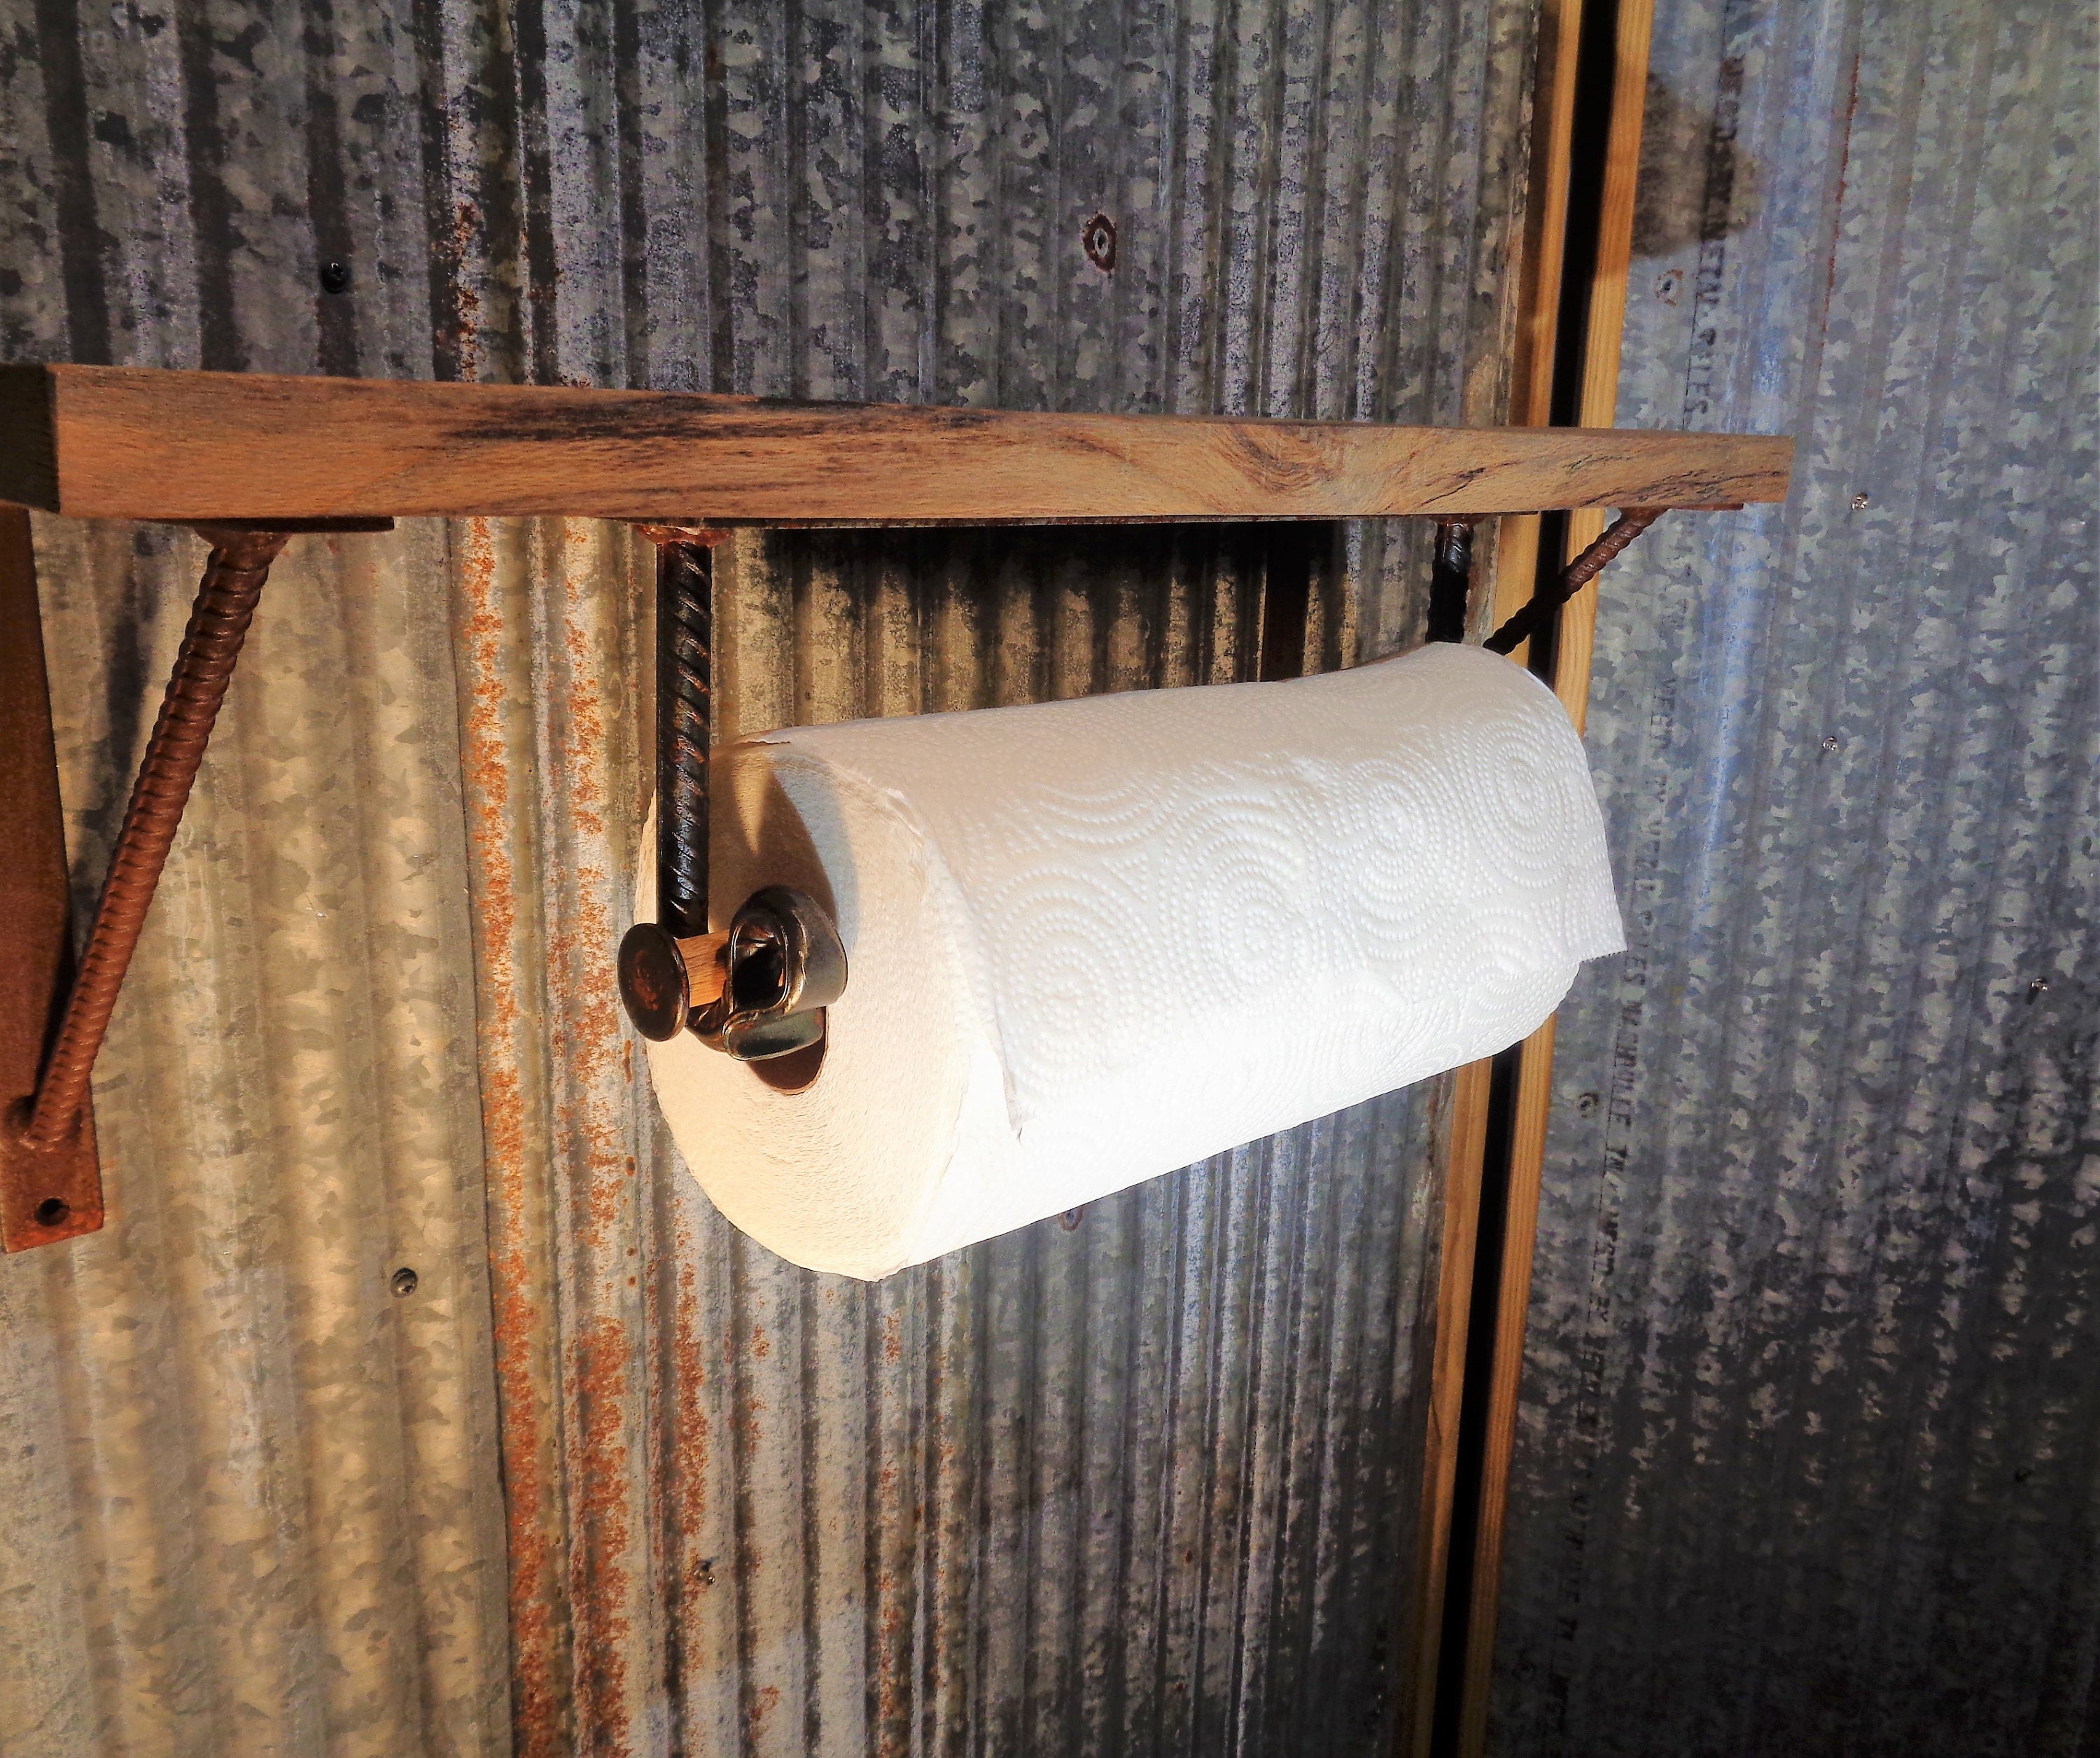 Rustic Farmhouse Handcrafted Forged ReBar Under Cabinet Paper Towel Holder,  Rack, Old Industrial Steel Look, For Cabin, Bar, Kitchen Decor